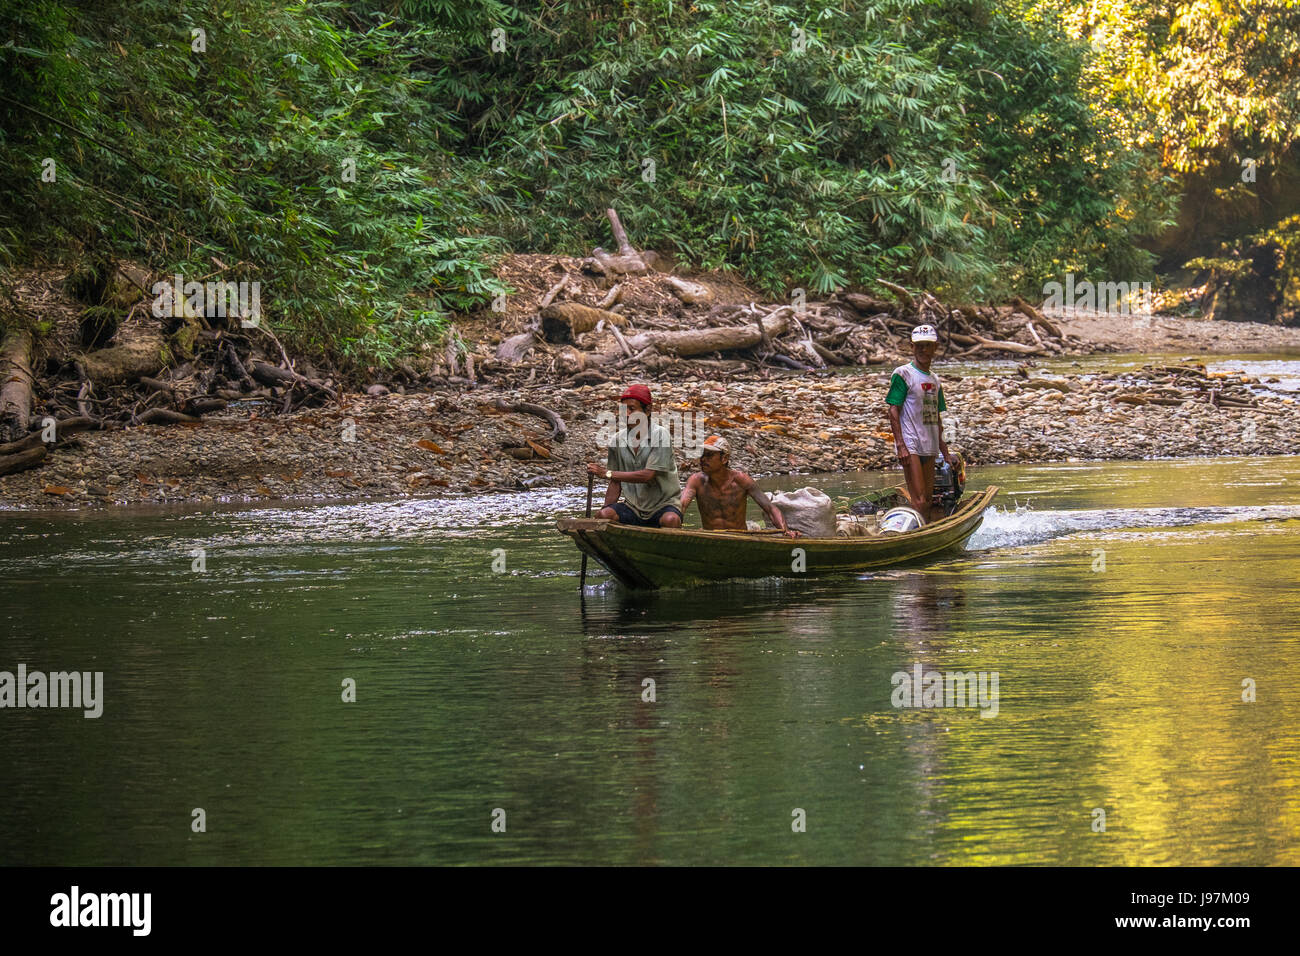 Manoeuvring boat through shallow rapids in the Heart Of Borneo, West Kalimantan, Indonesia. - Stock Image